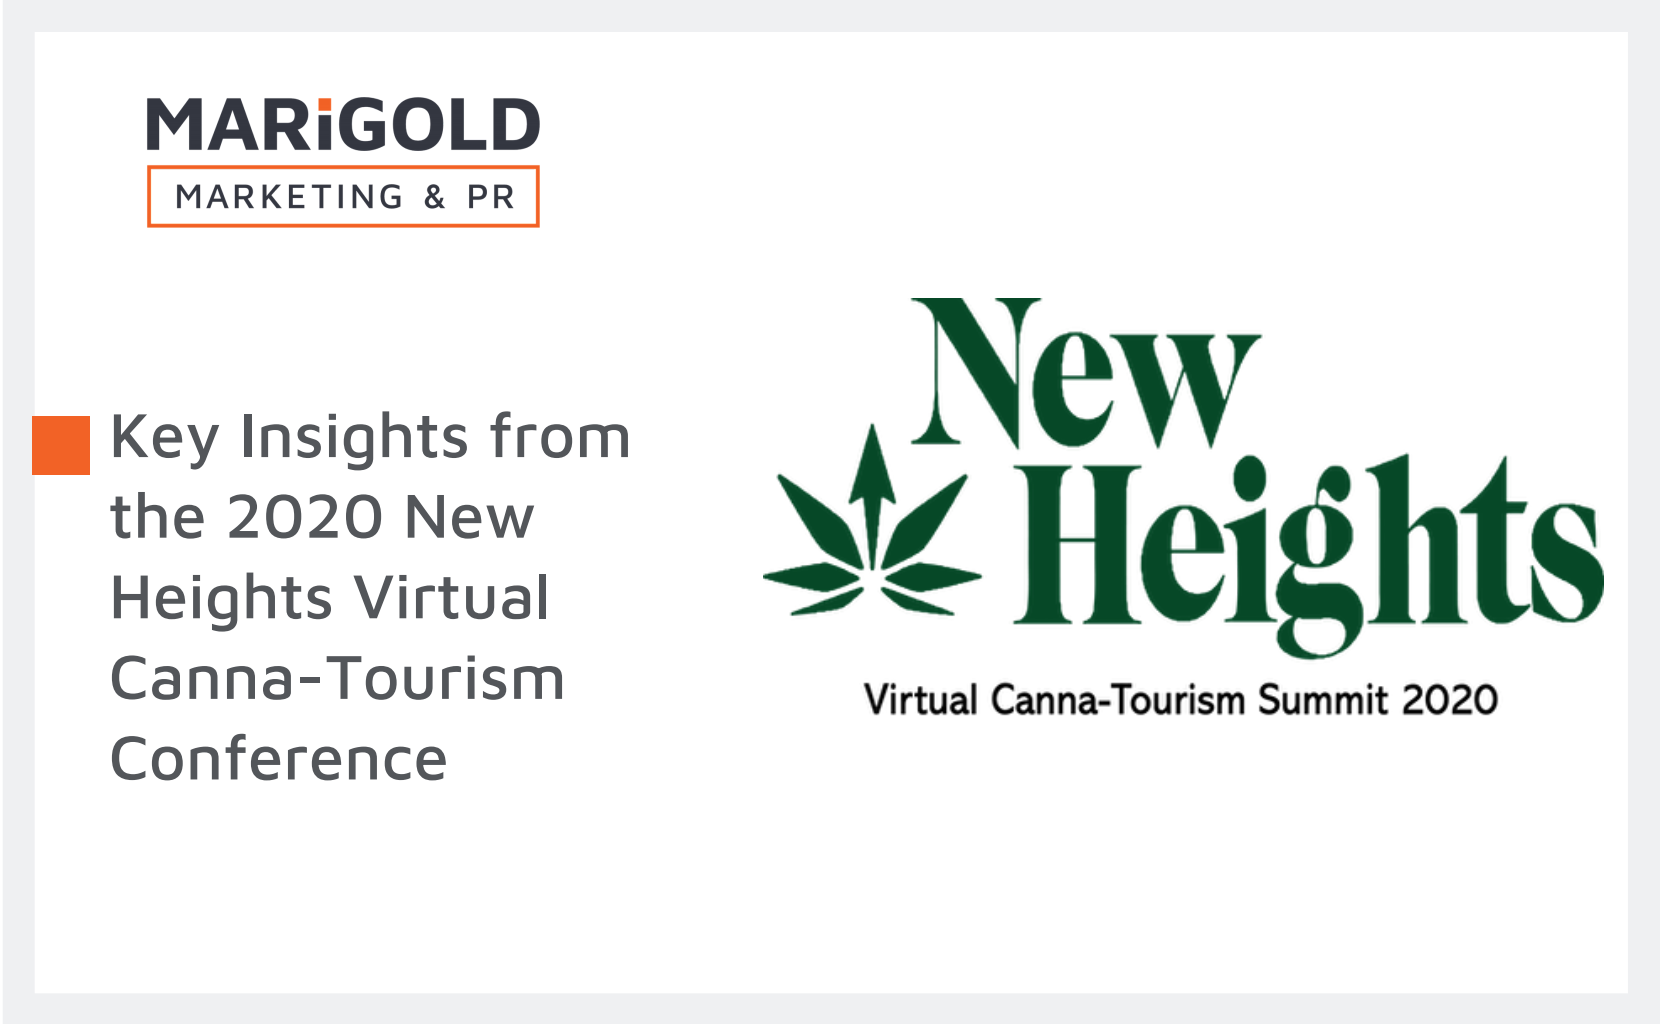 new heights virtual canna tourism summit